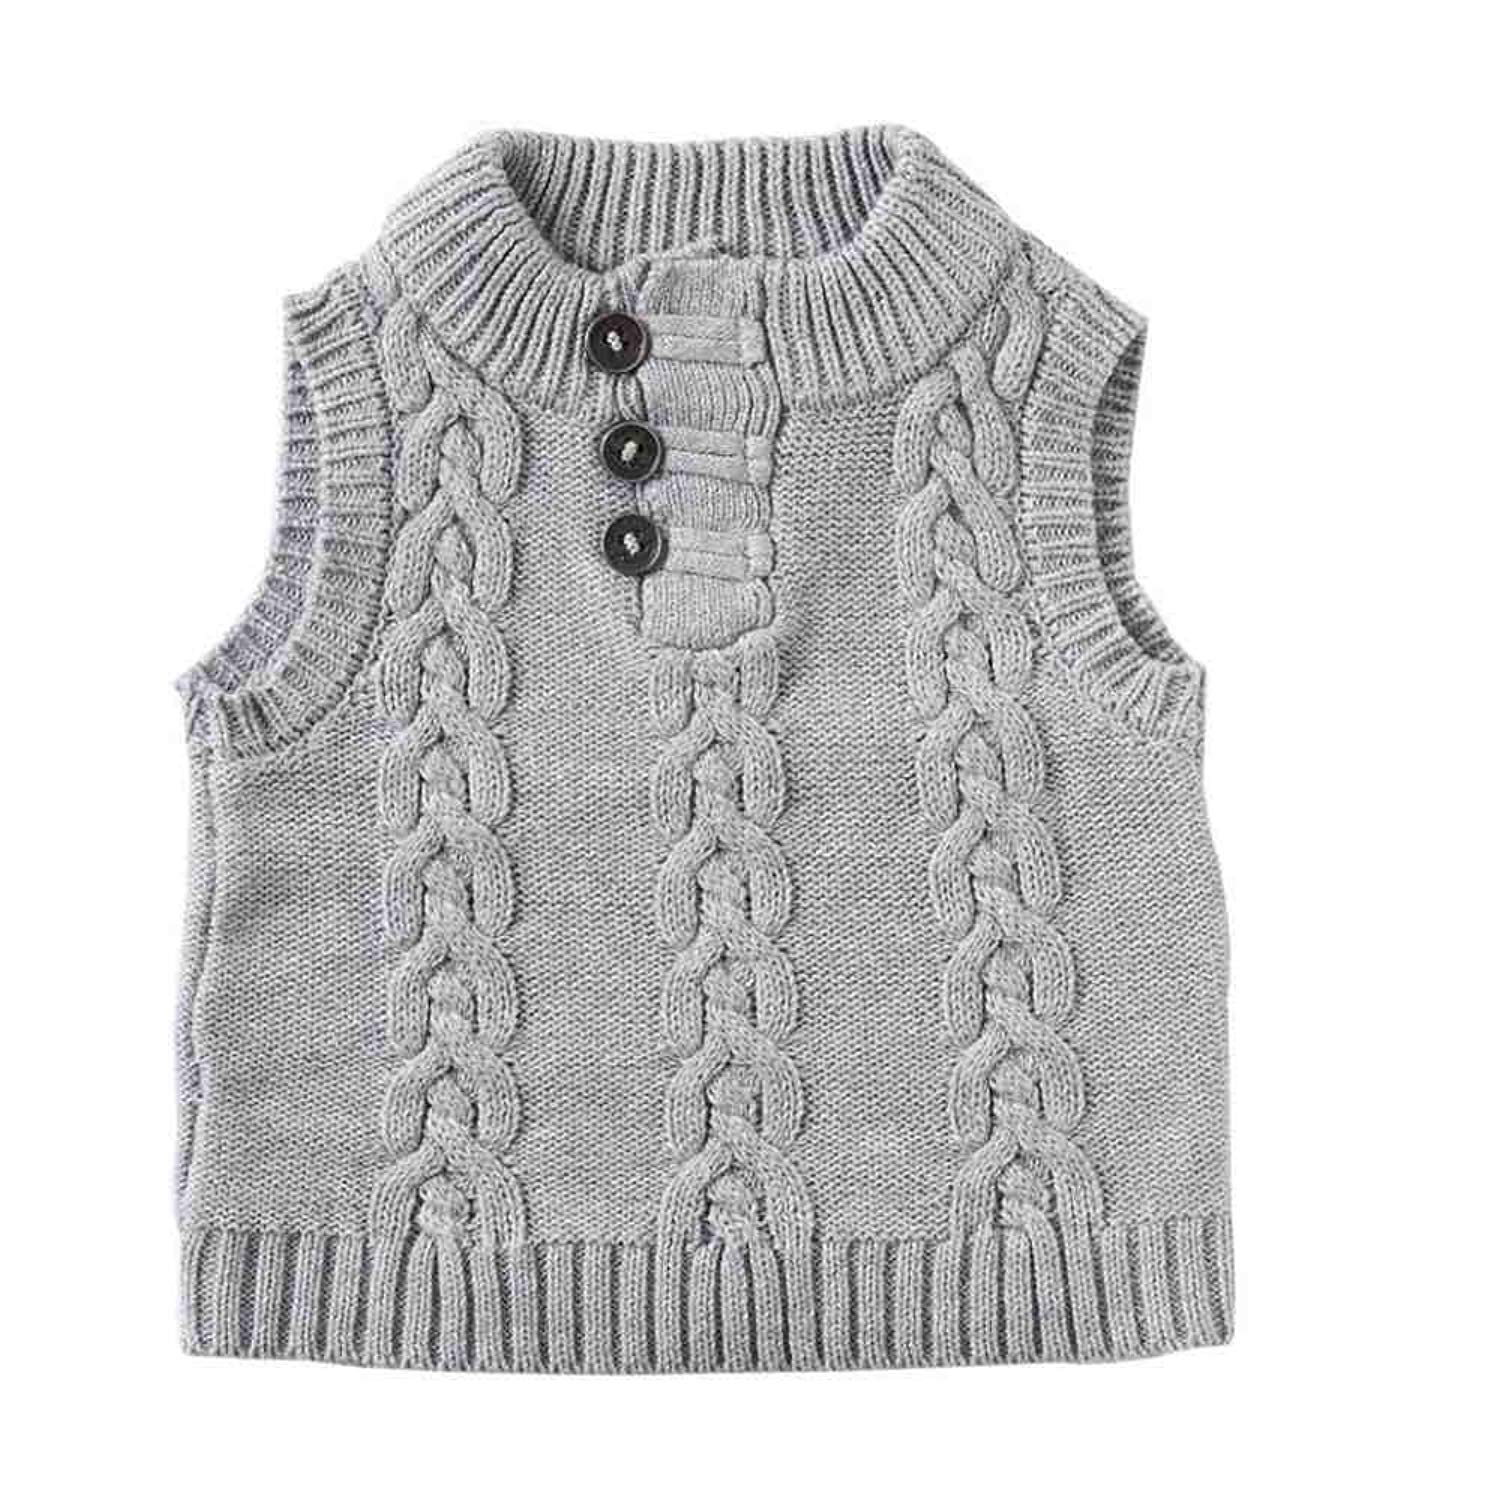 Cheap Button Down Sweater Vest For Men Find Button Down Sweater